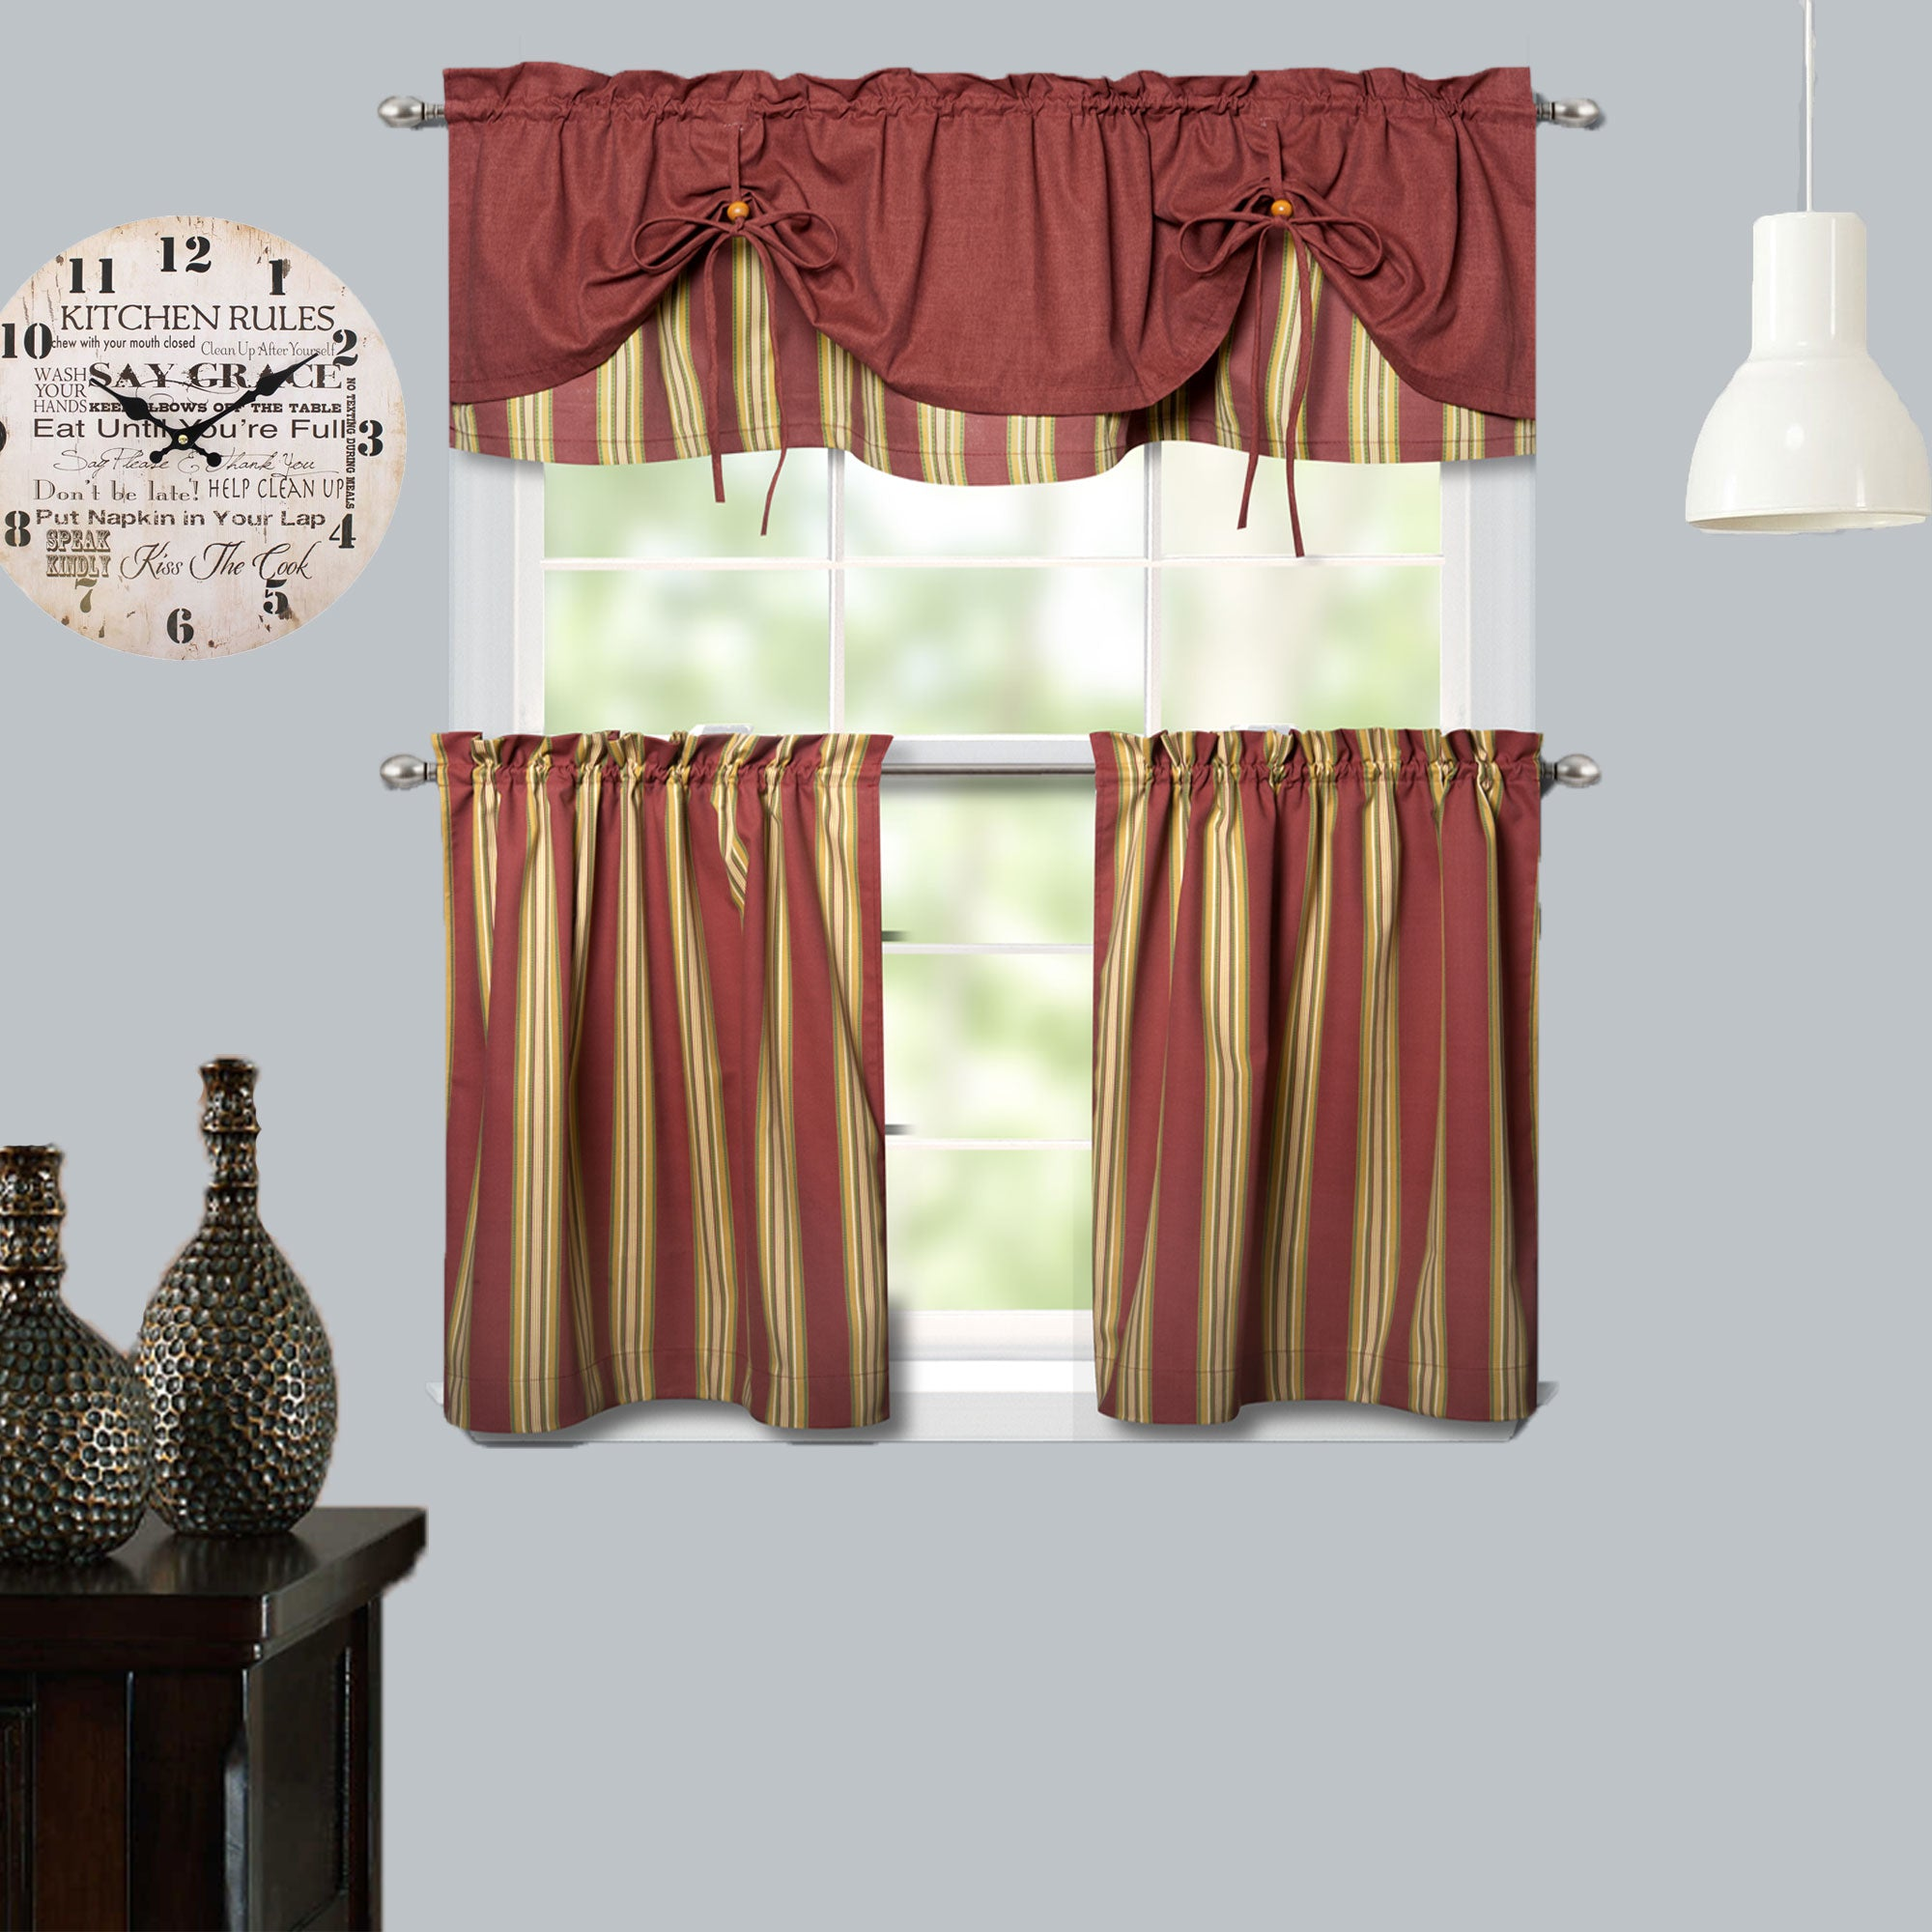 Salmon Lisa Stripe Tier and Tie-up Valance hanging on a curtain rod